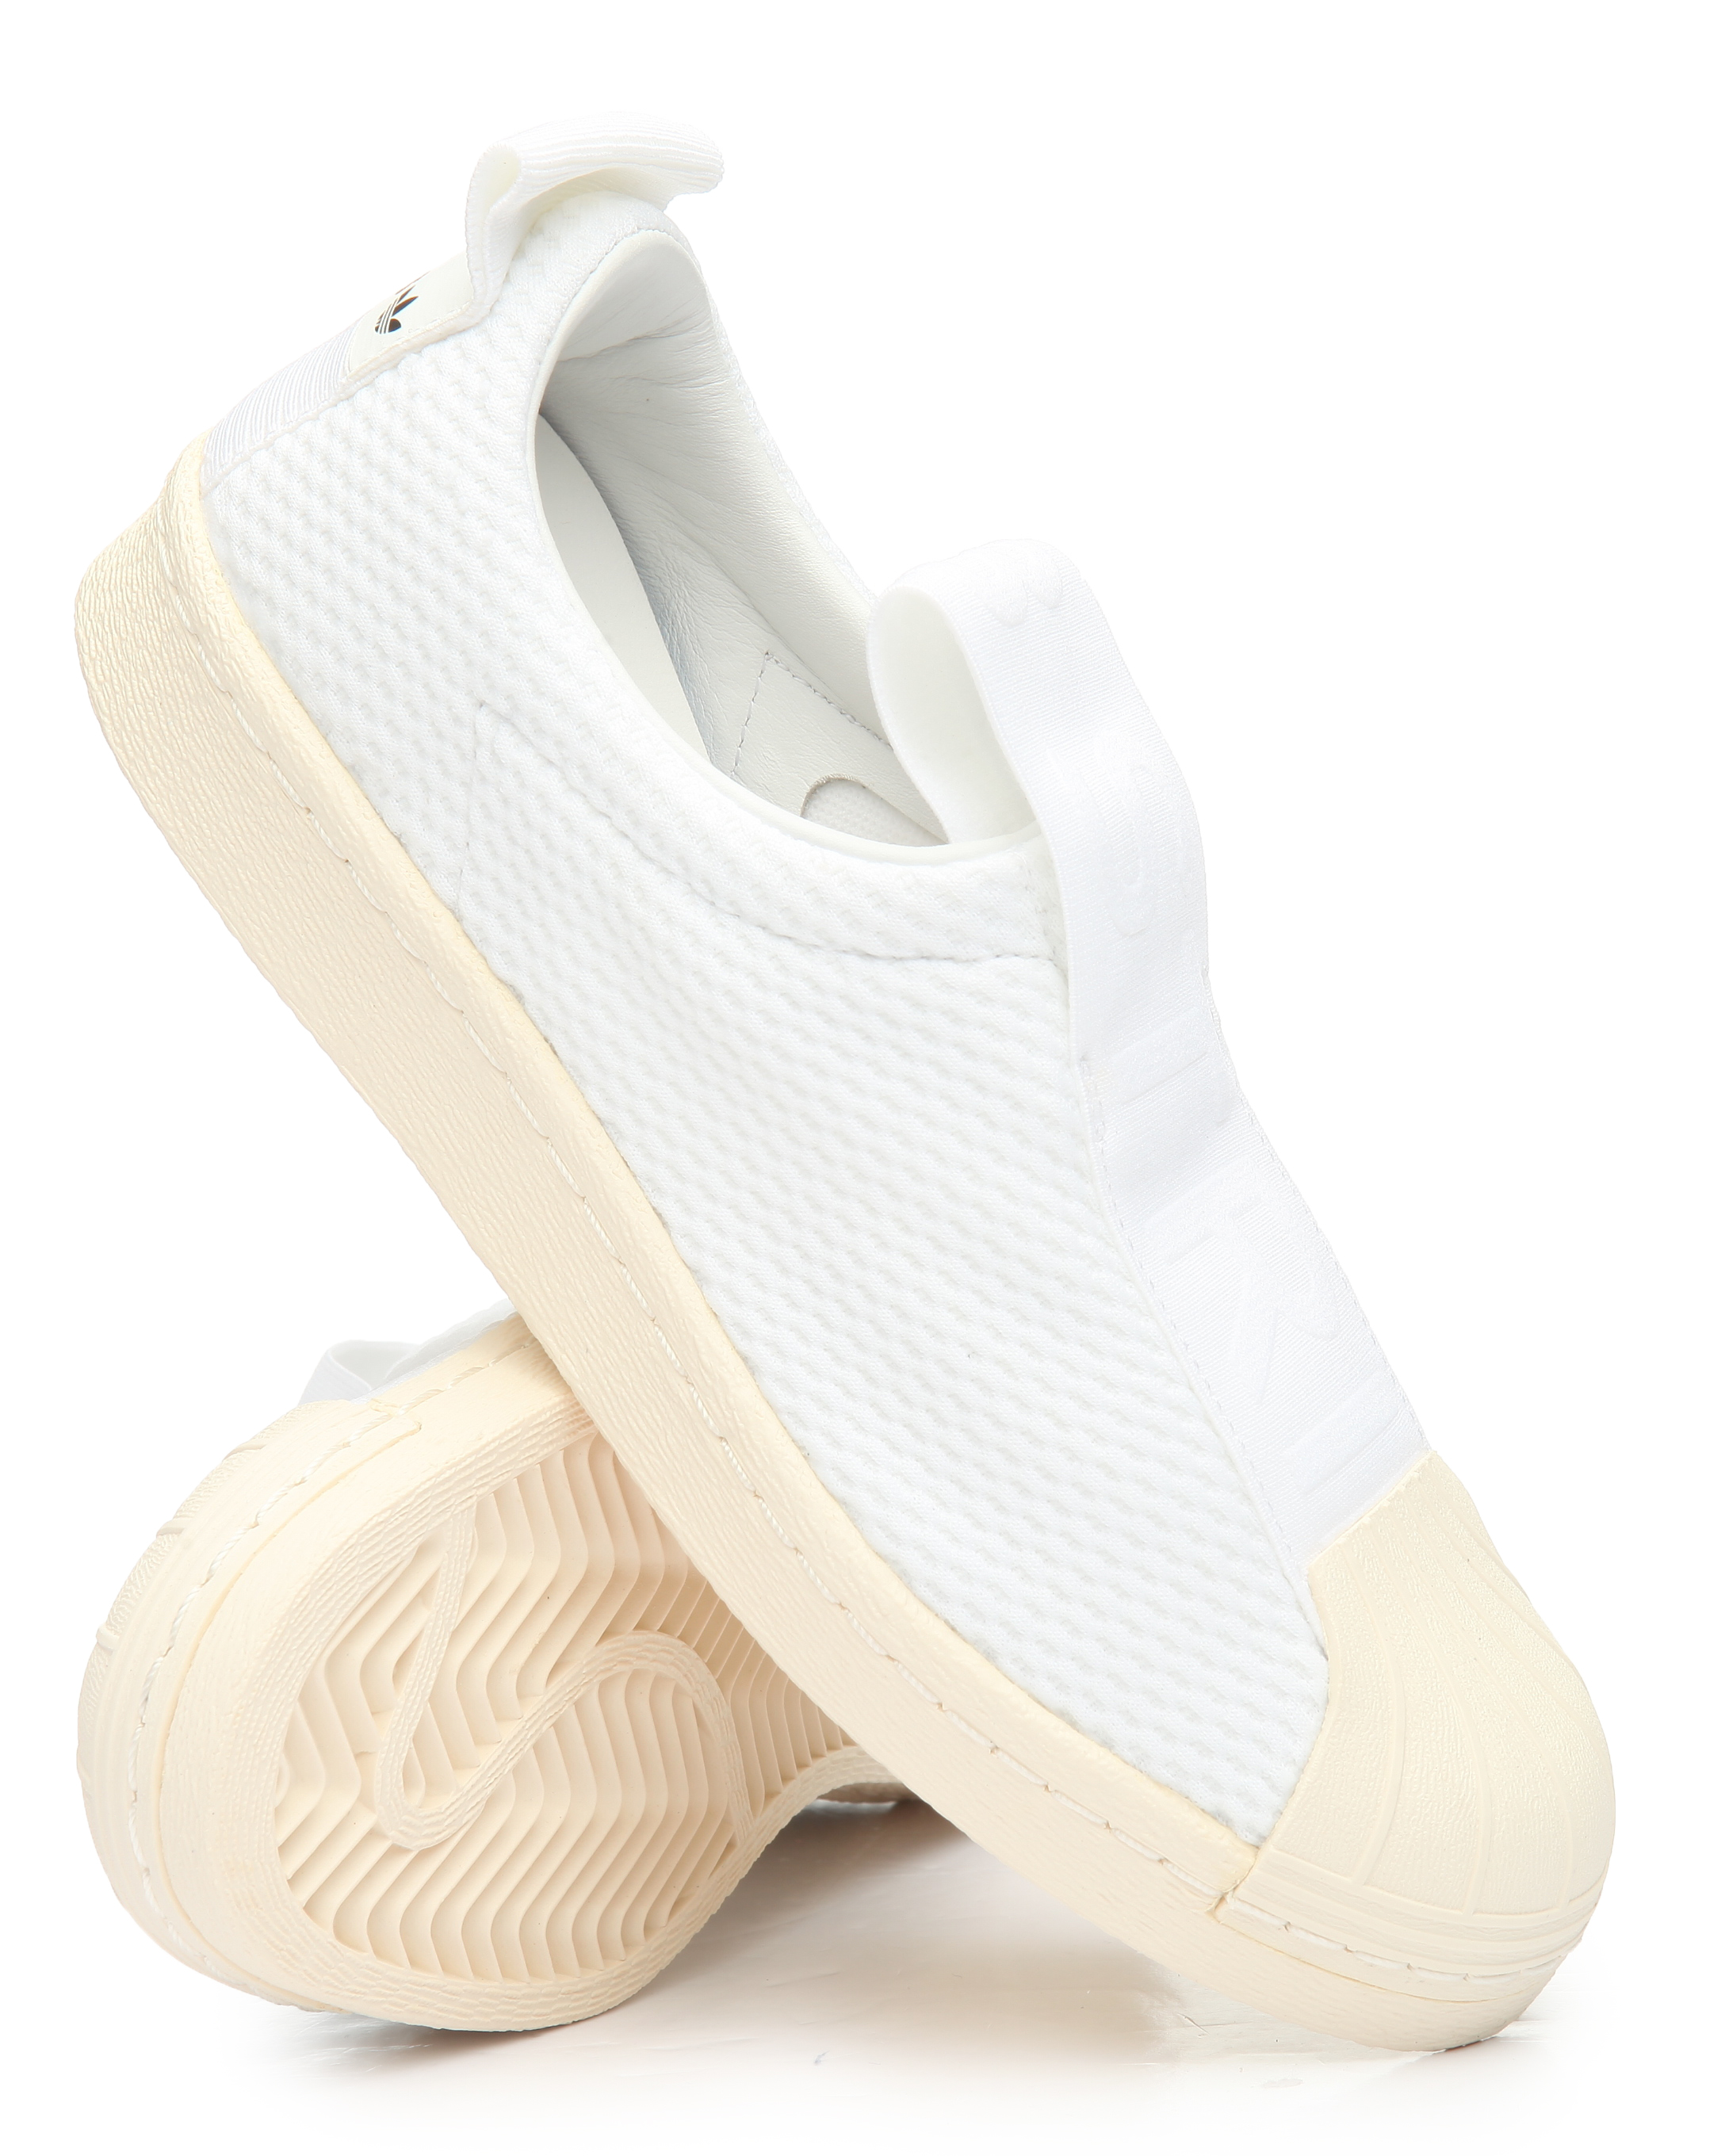 Adidas Superstar Slip On Womens Shoes (Off White)